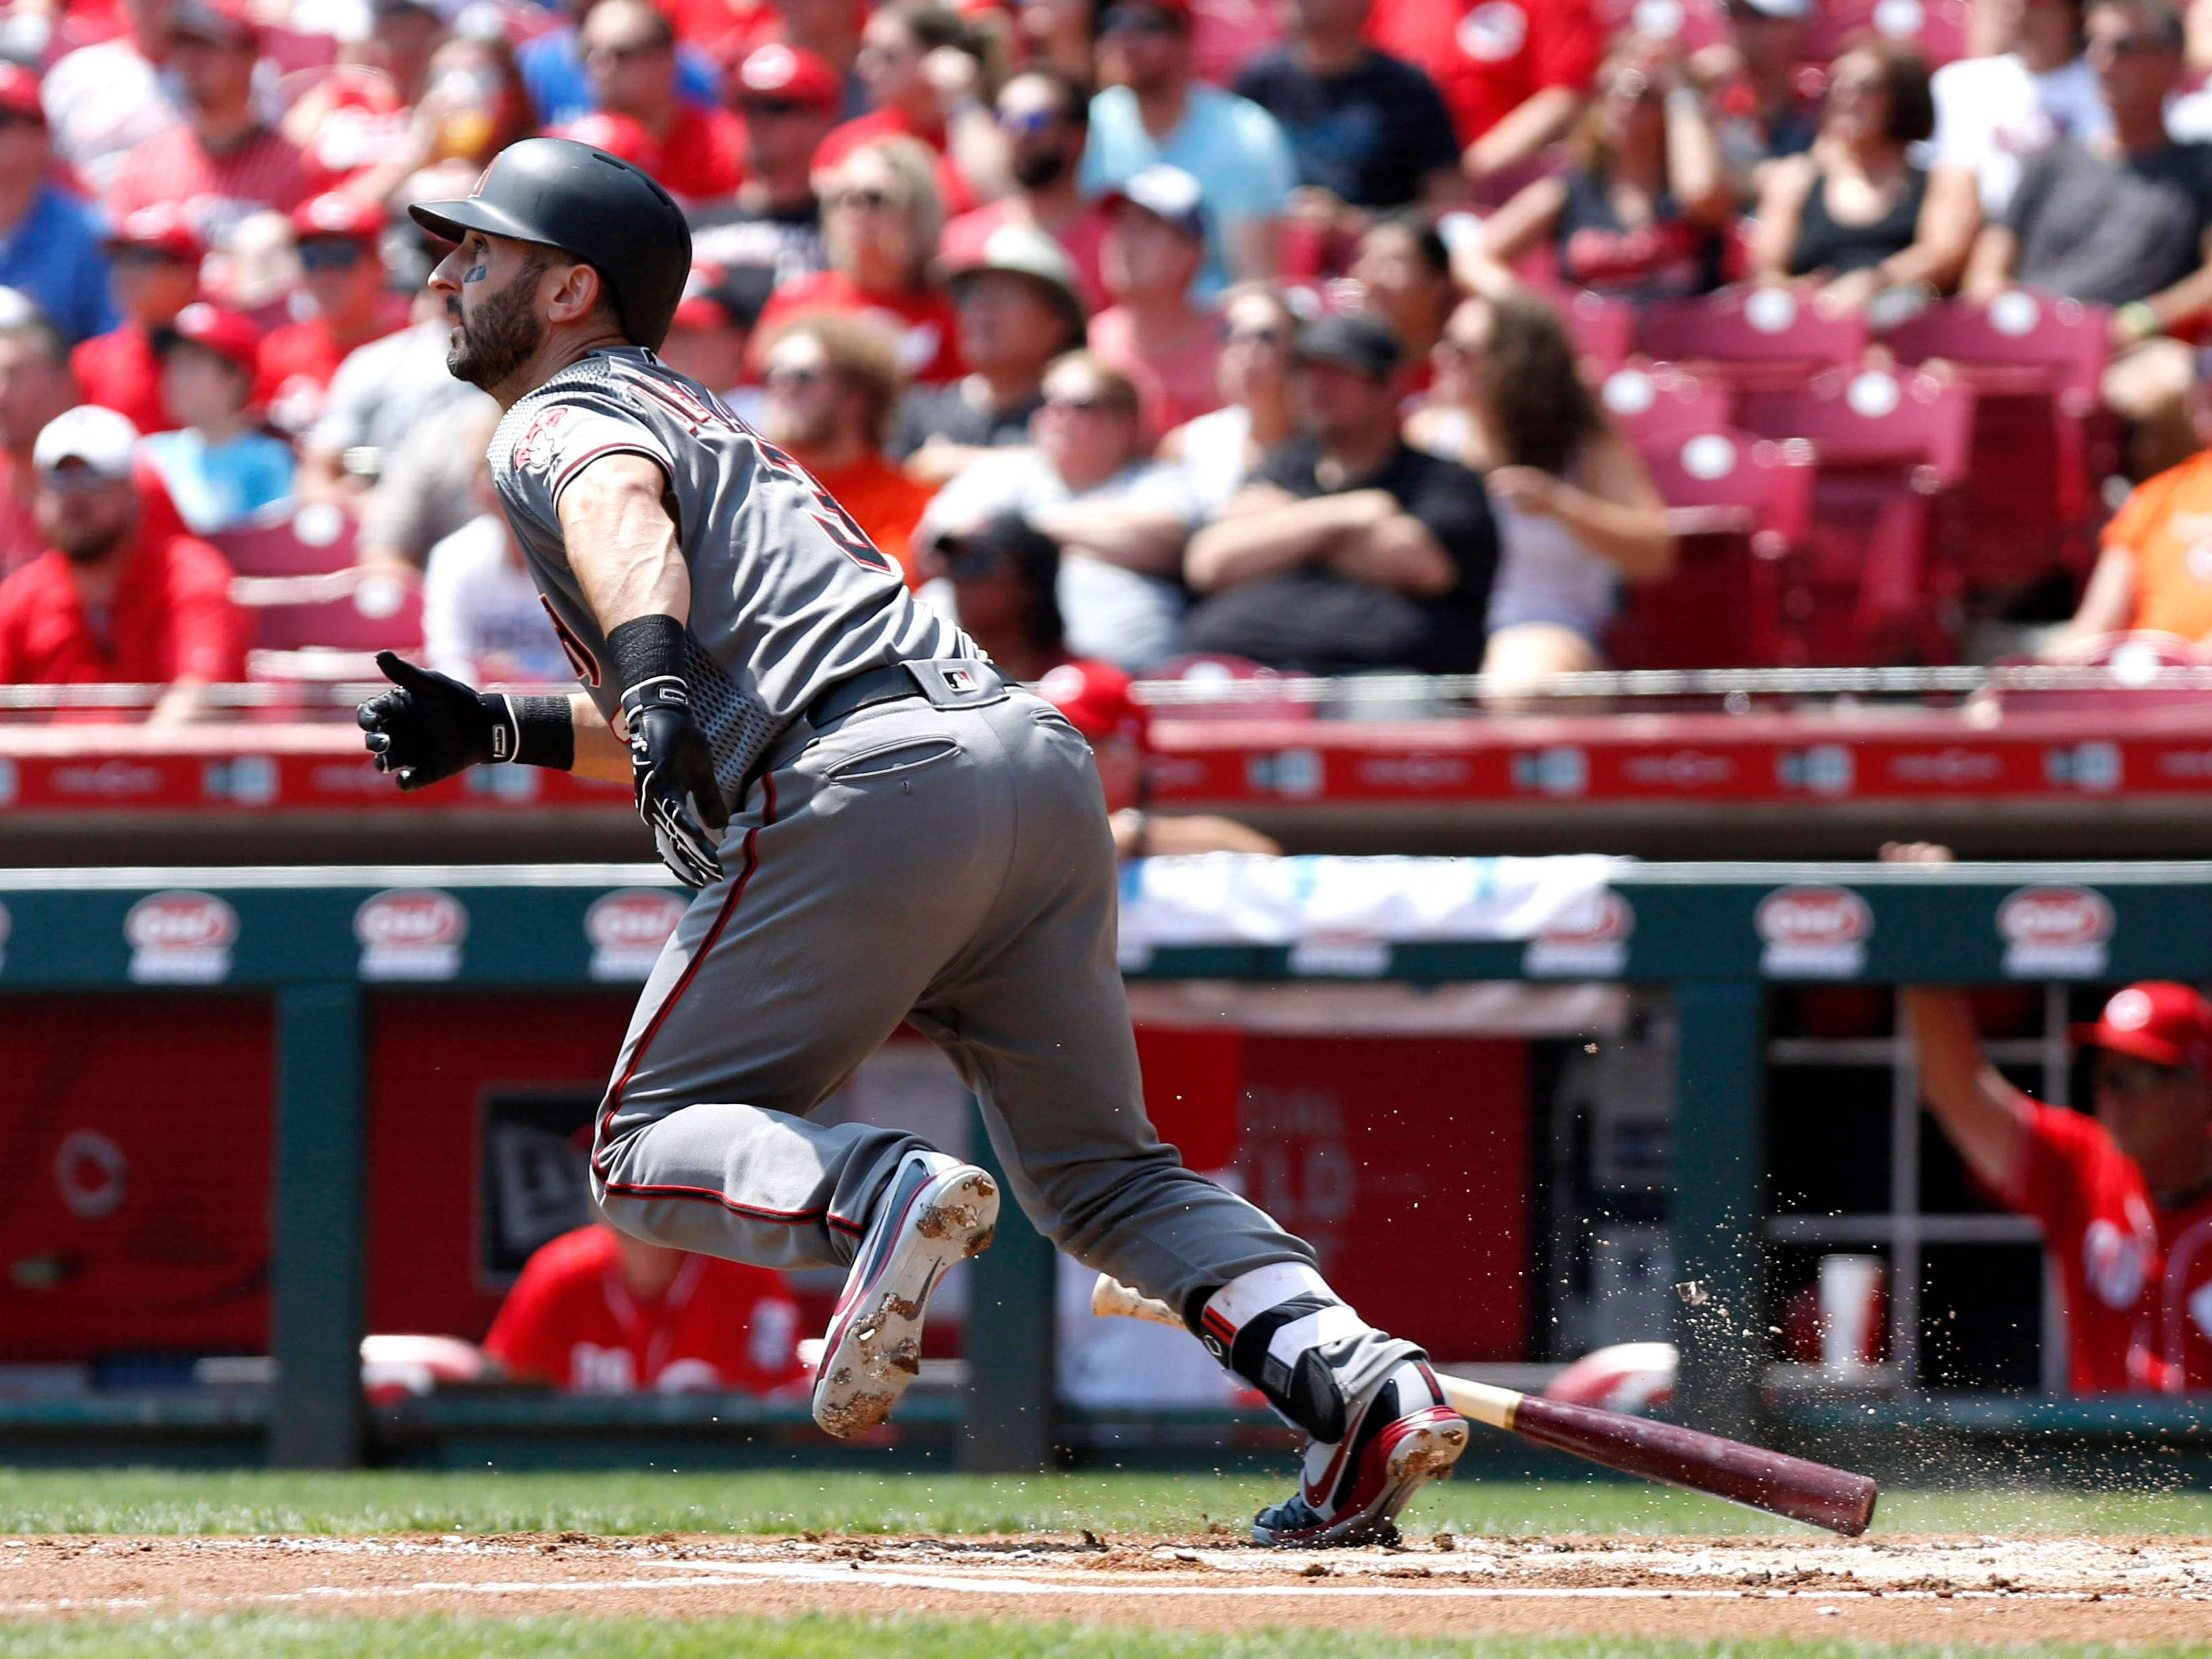 Aug 12, 2018; Cincinnati, OH, USA; Arizona Diamondbacks third baseman Daniel Descalso (3) hits a three-run home run against the Cincinnati Reds during the first inning at Great American Ball Park. Mandatory Credit: David Kohl-USA TODAY Sports